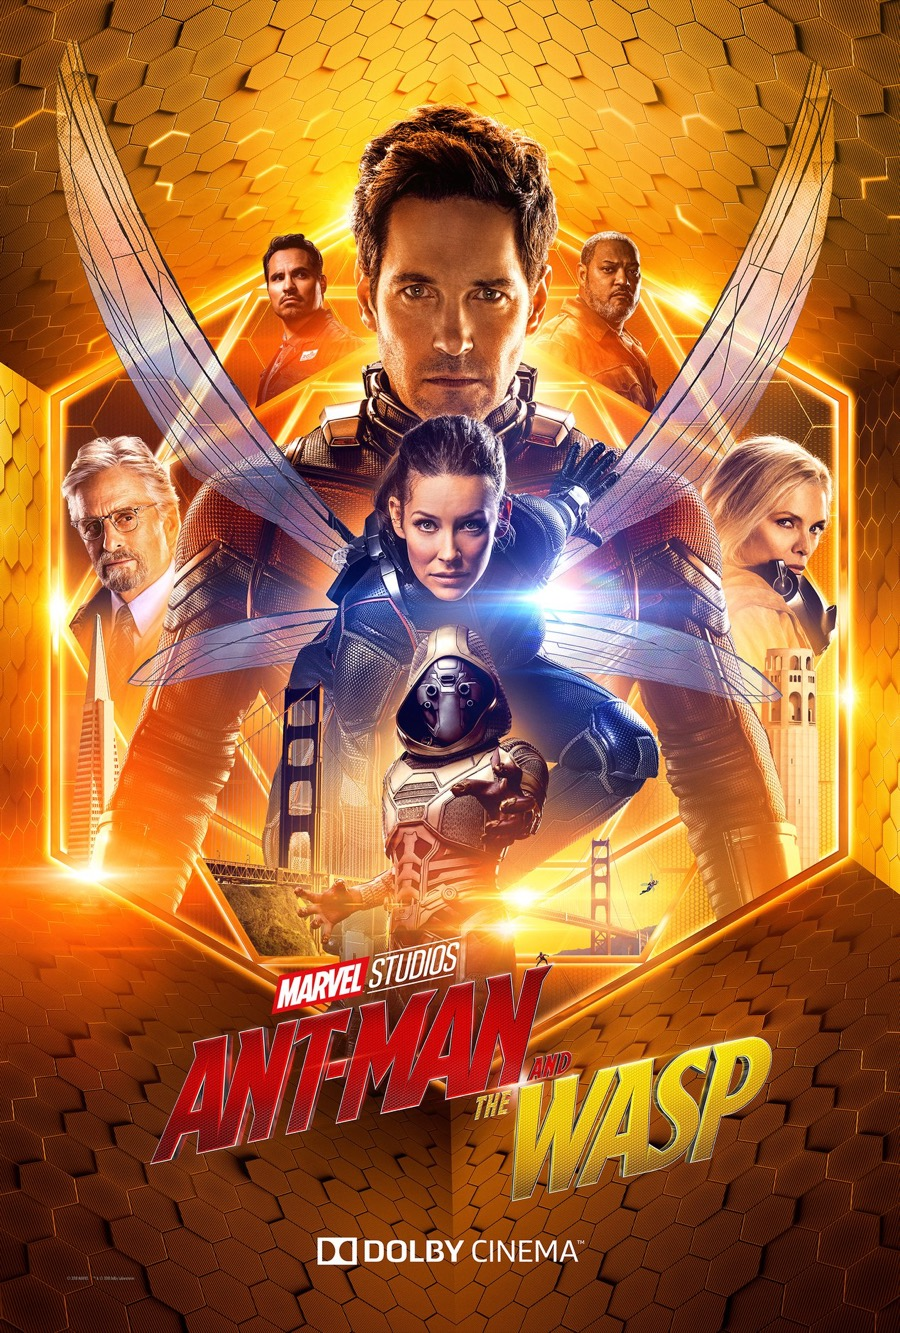 Check Out This New Featurette From Ant-Man And The Wasp